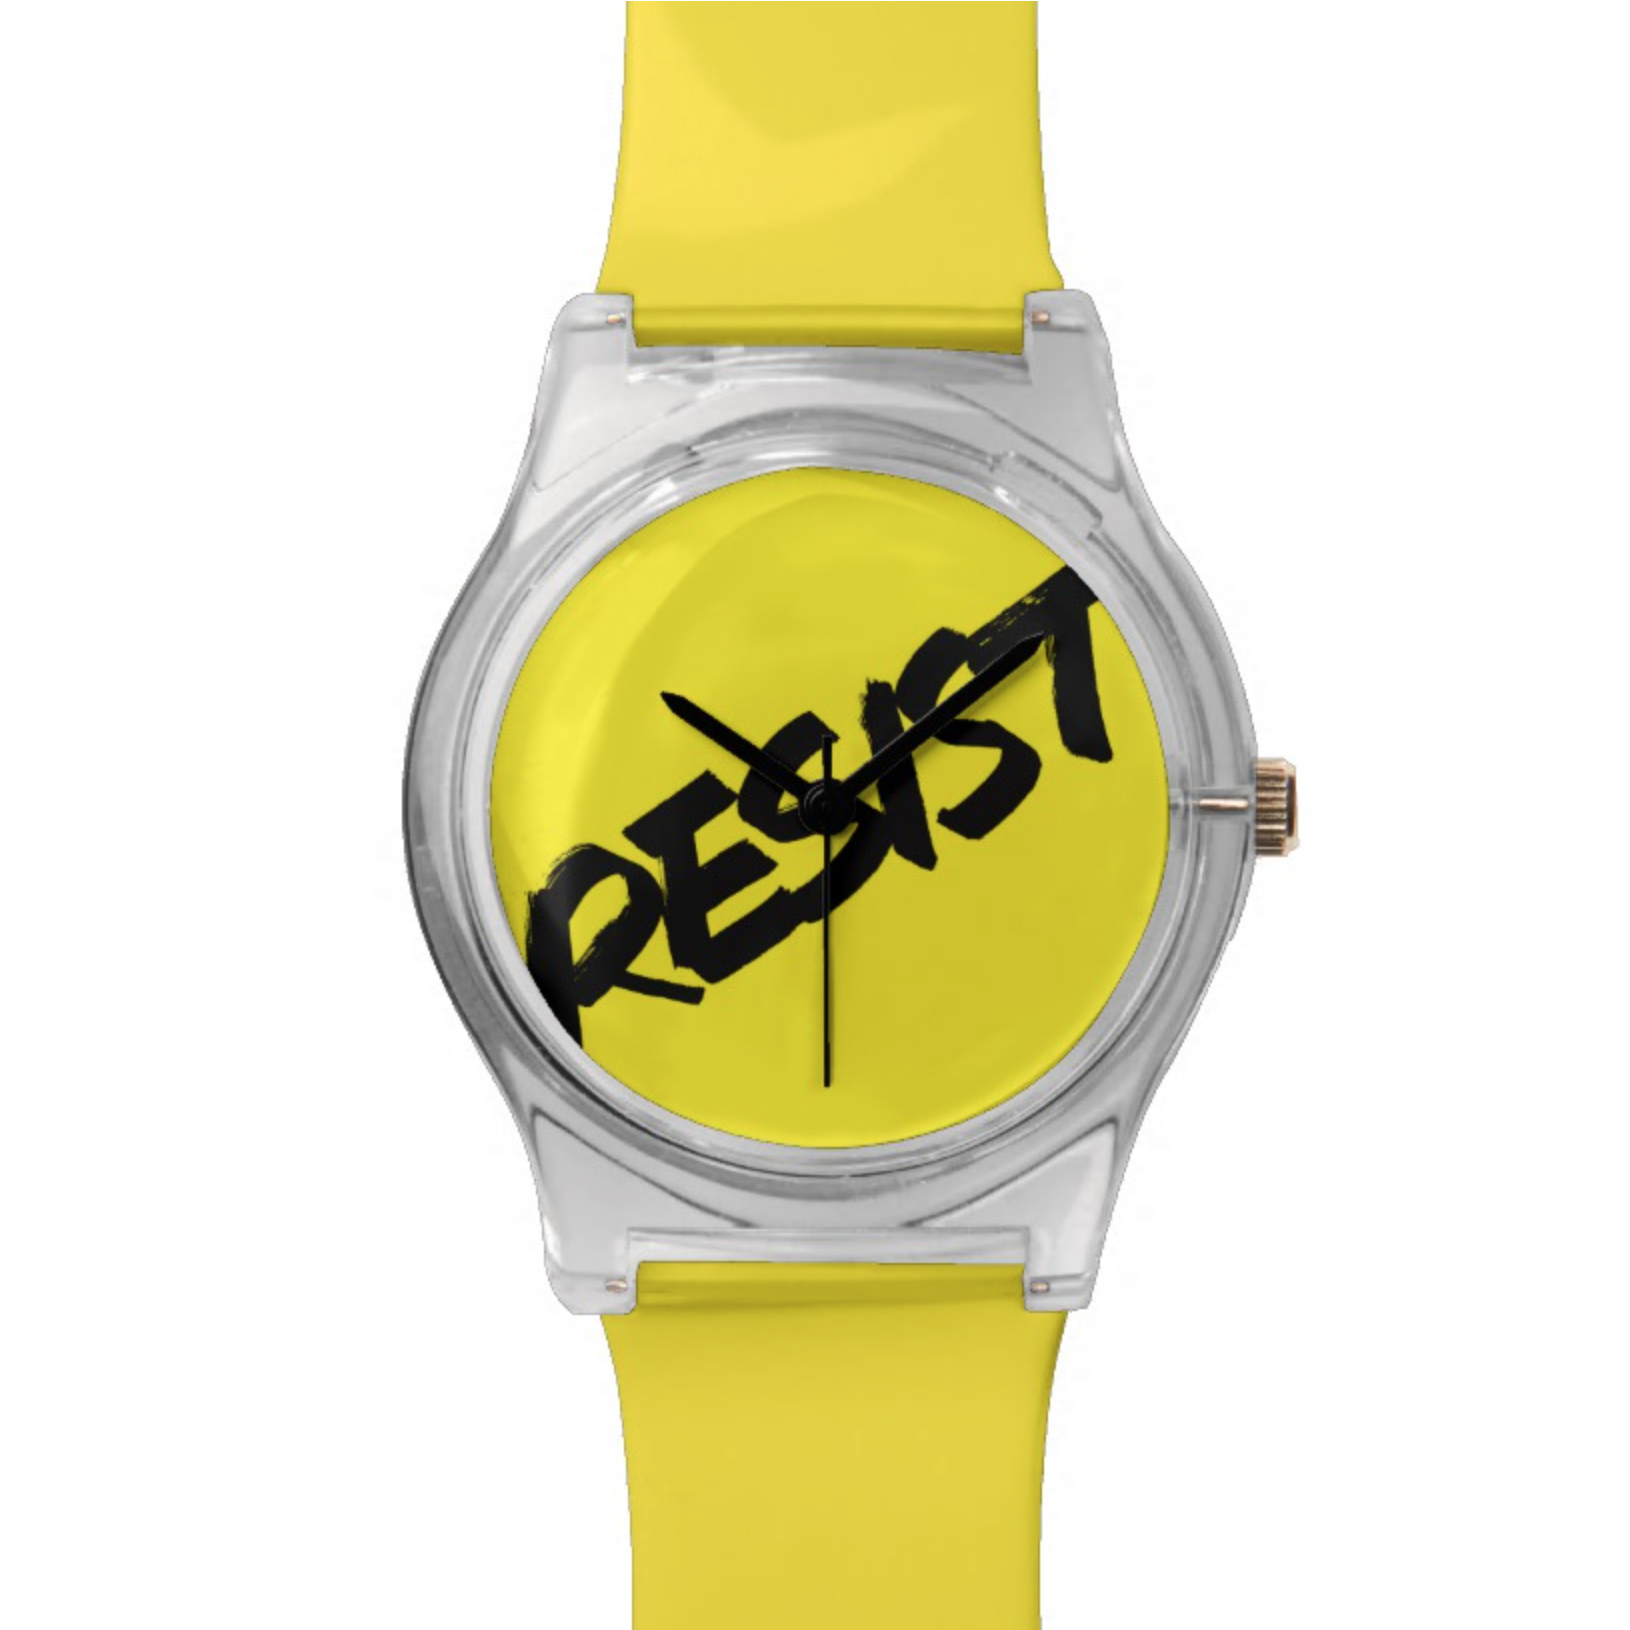 Resist - Caution Yellow